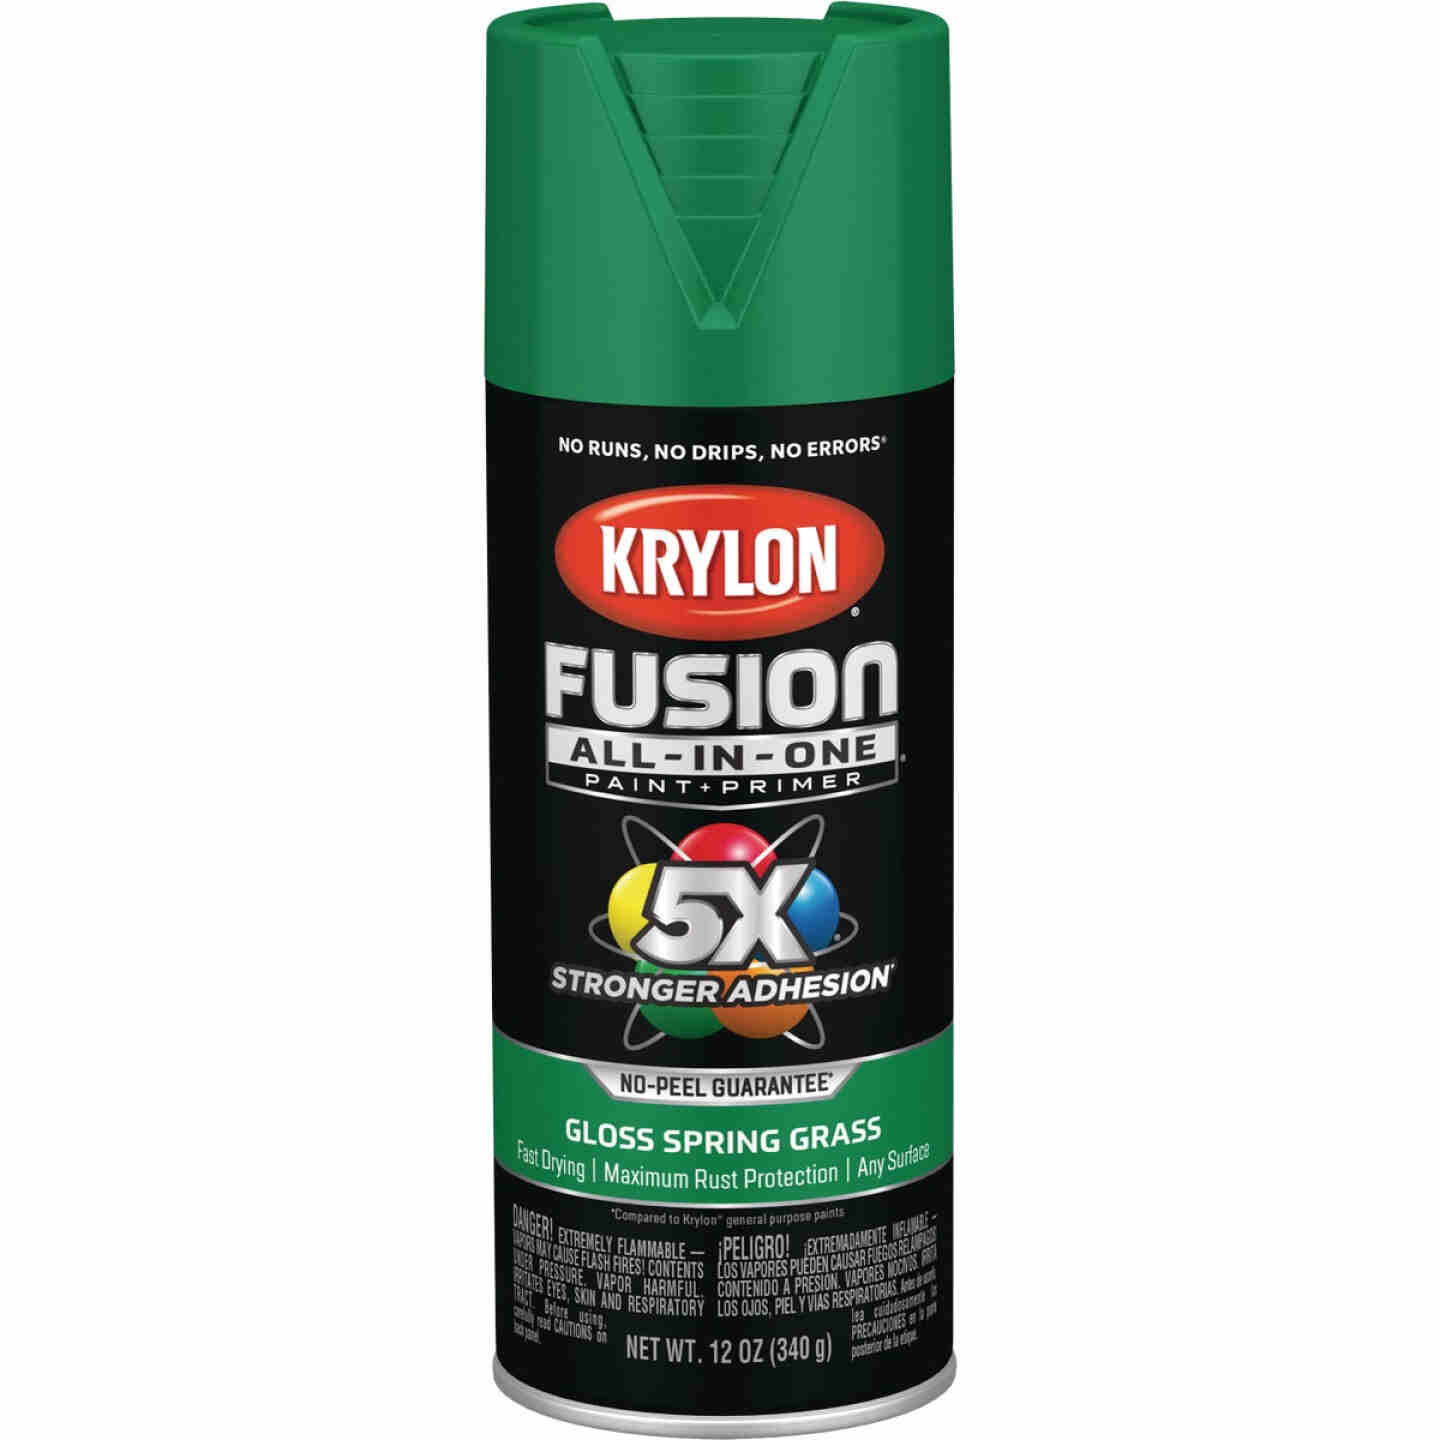 Krylon Fusion All-In-One Gloss Spray Paint & Primer, Spring Grass Image 1